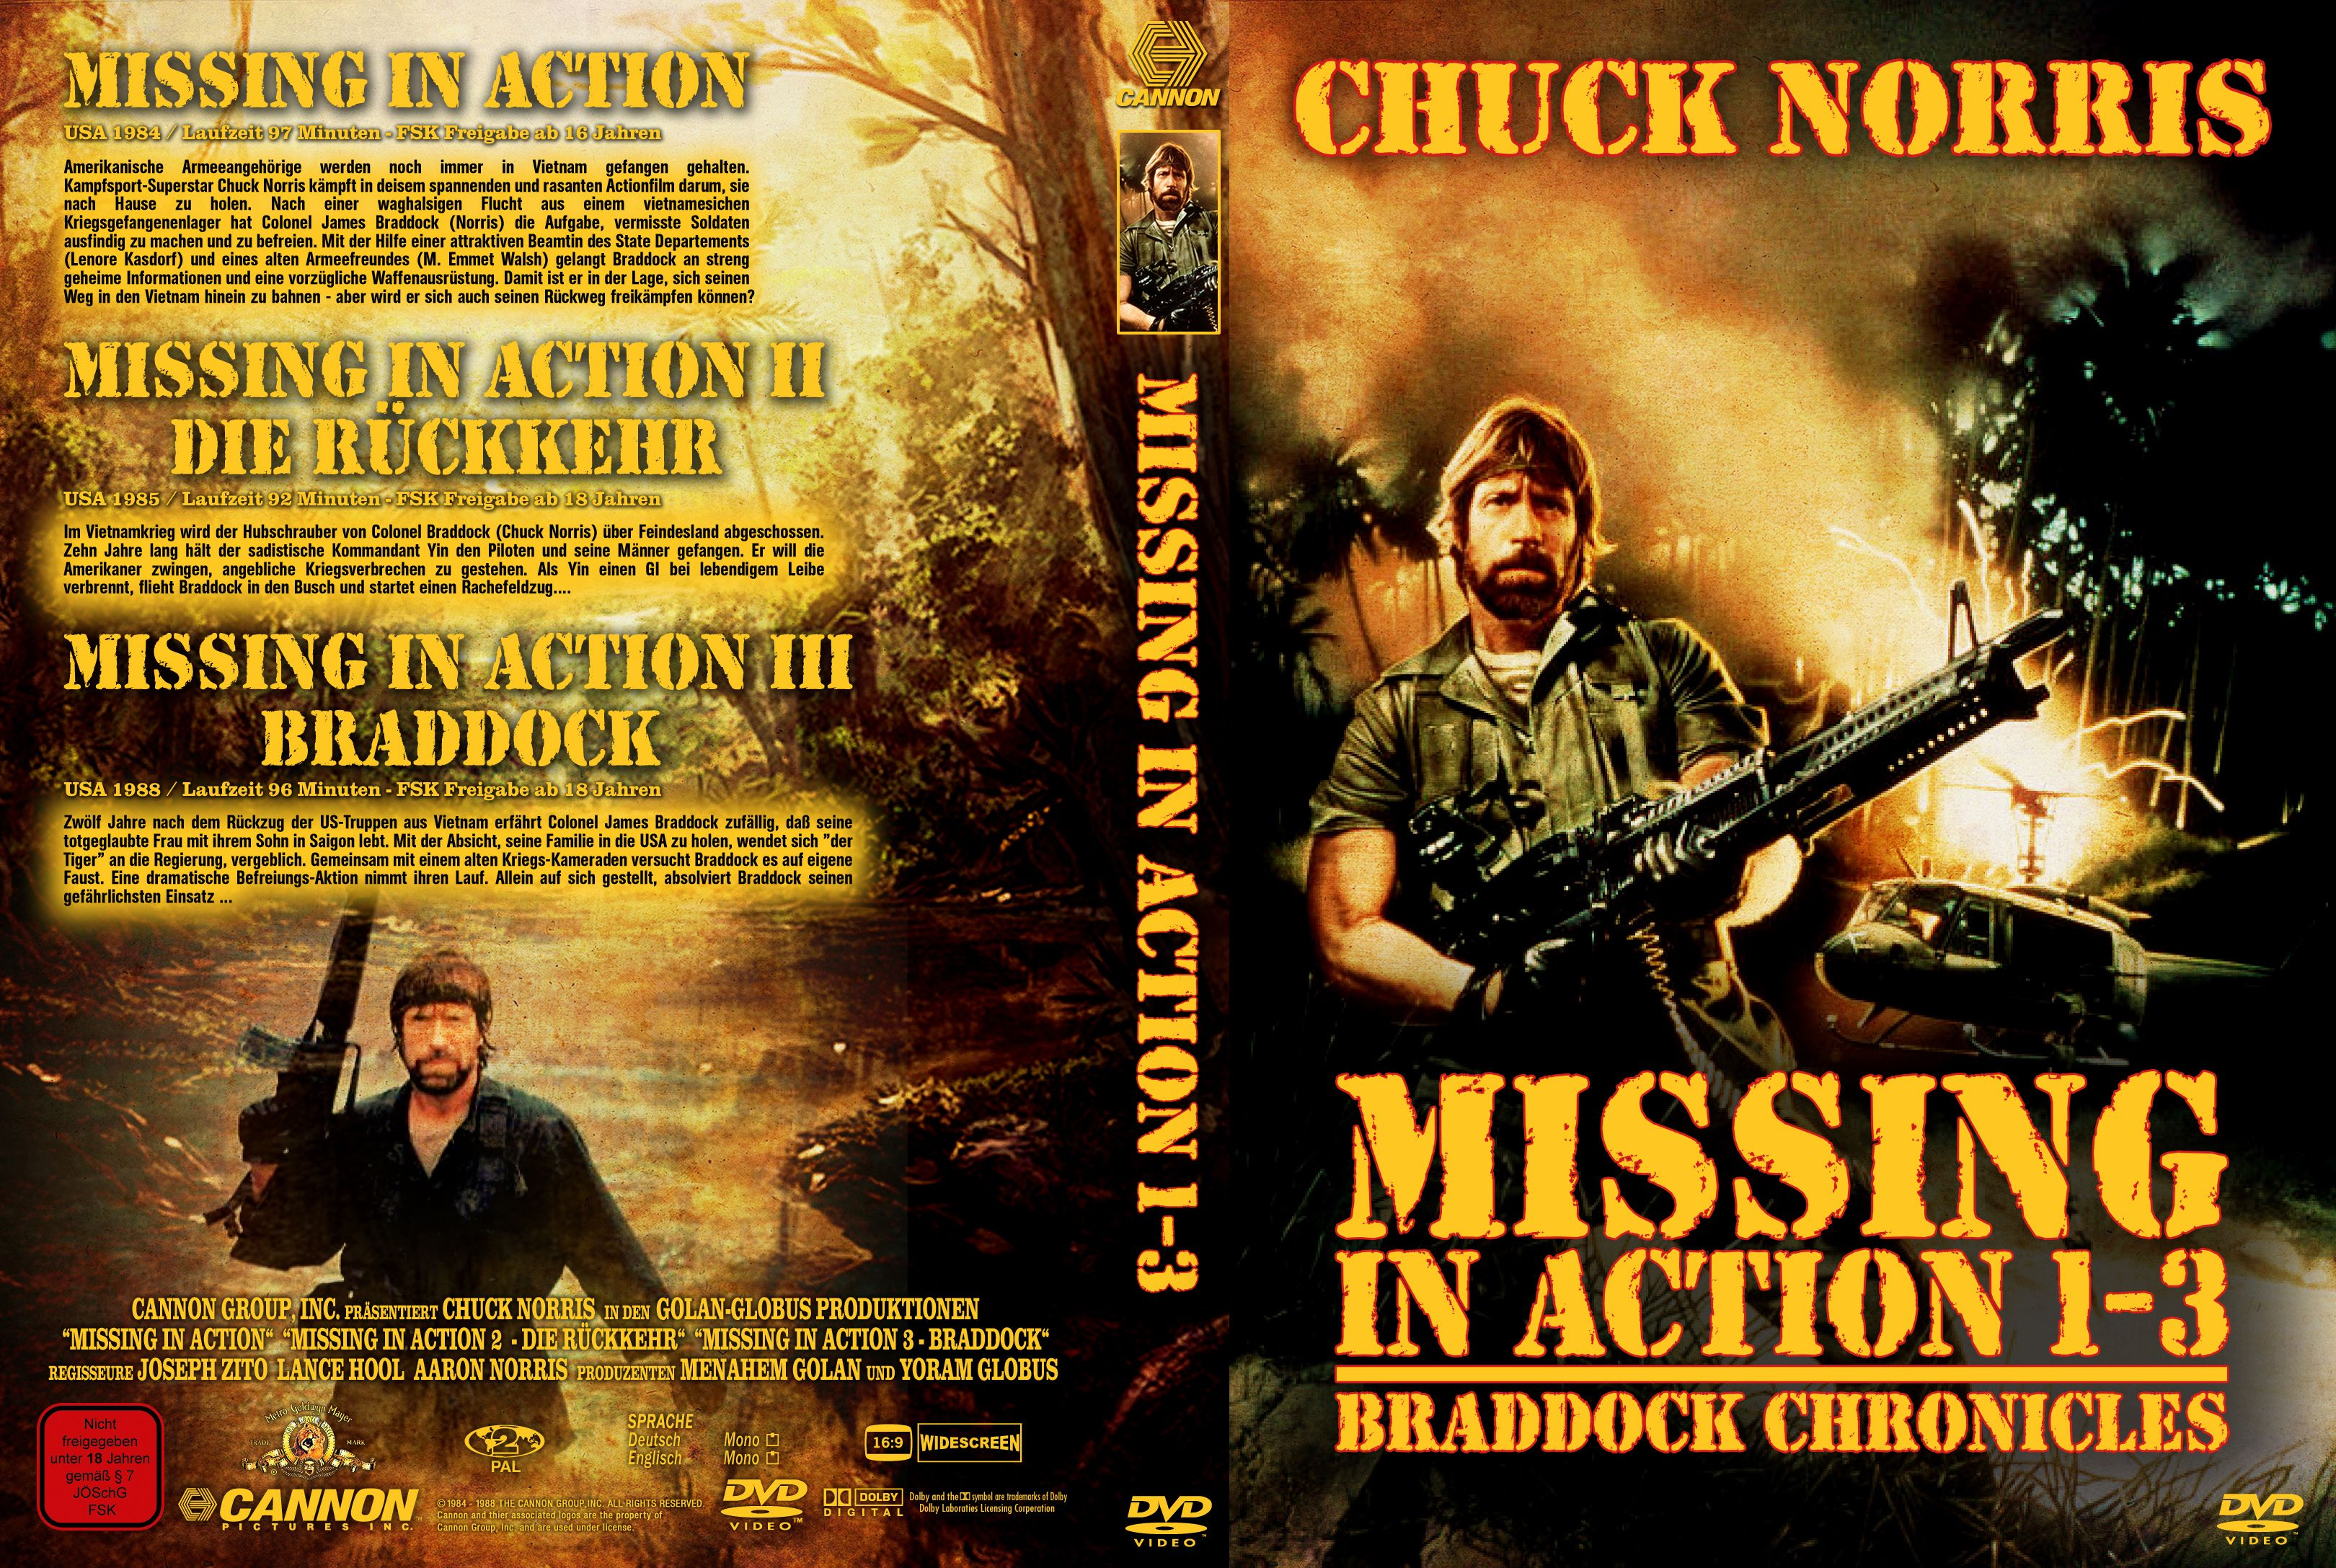 missing in action 1 3 region 2 dvd cover missing in